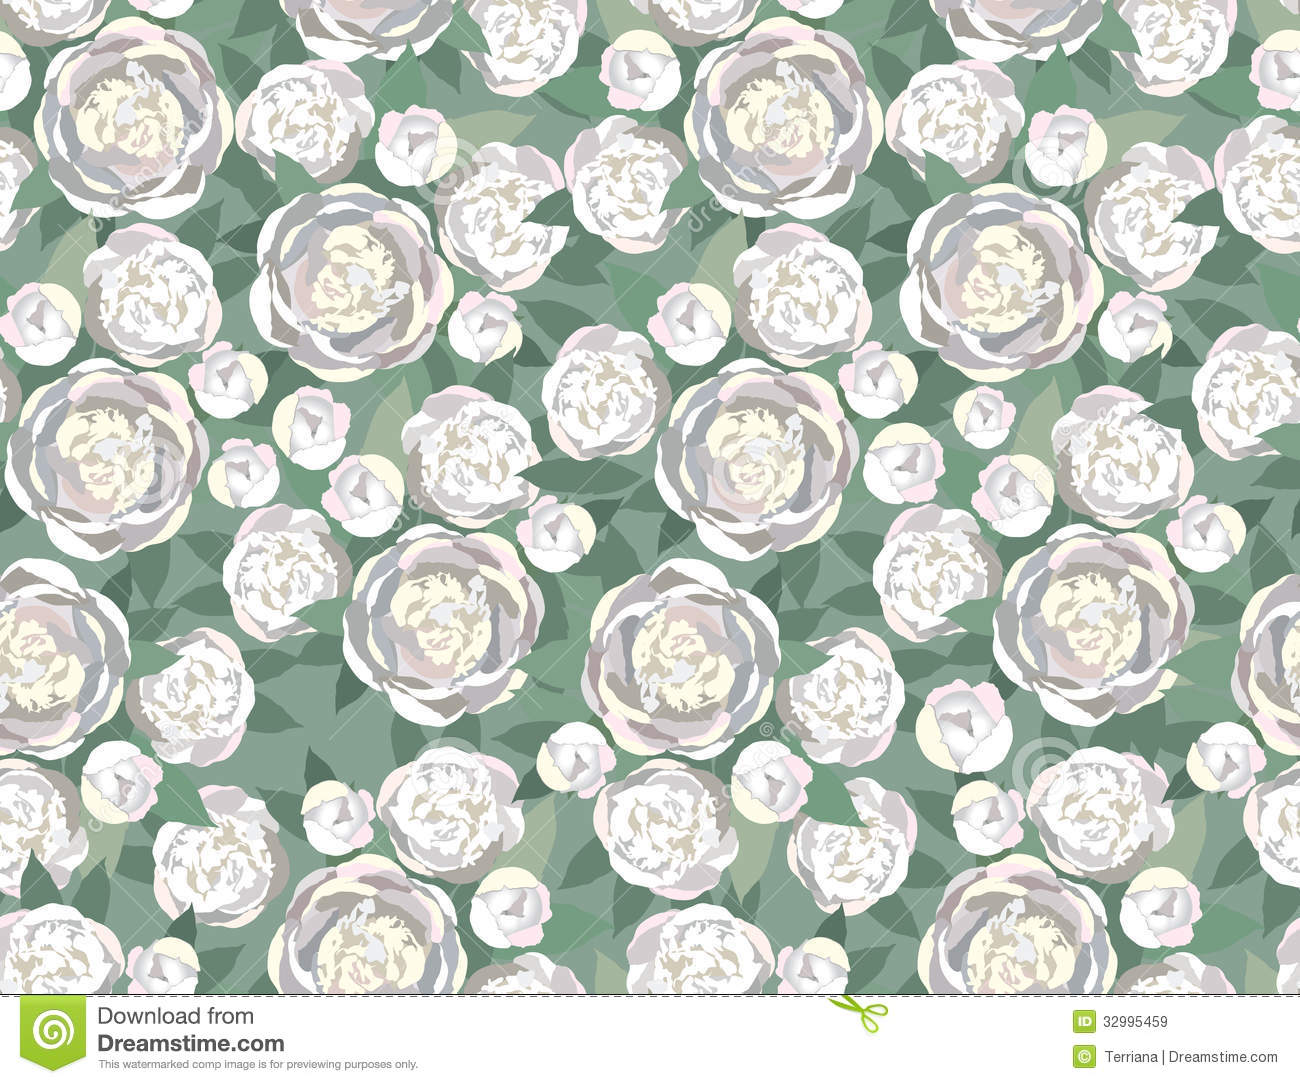 Abstract Swirl Flower Rose Seamless Texture Stock Illustration ... for seamless floral fabric textures  157uhy